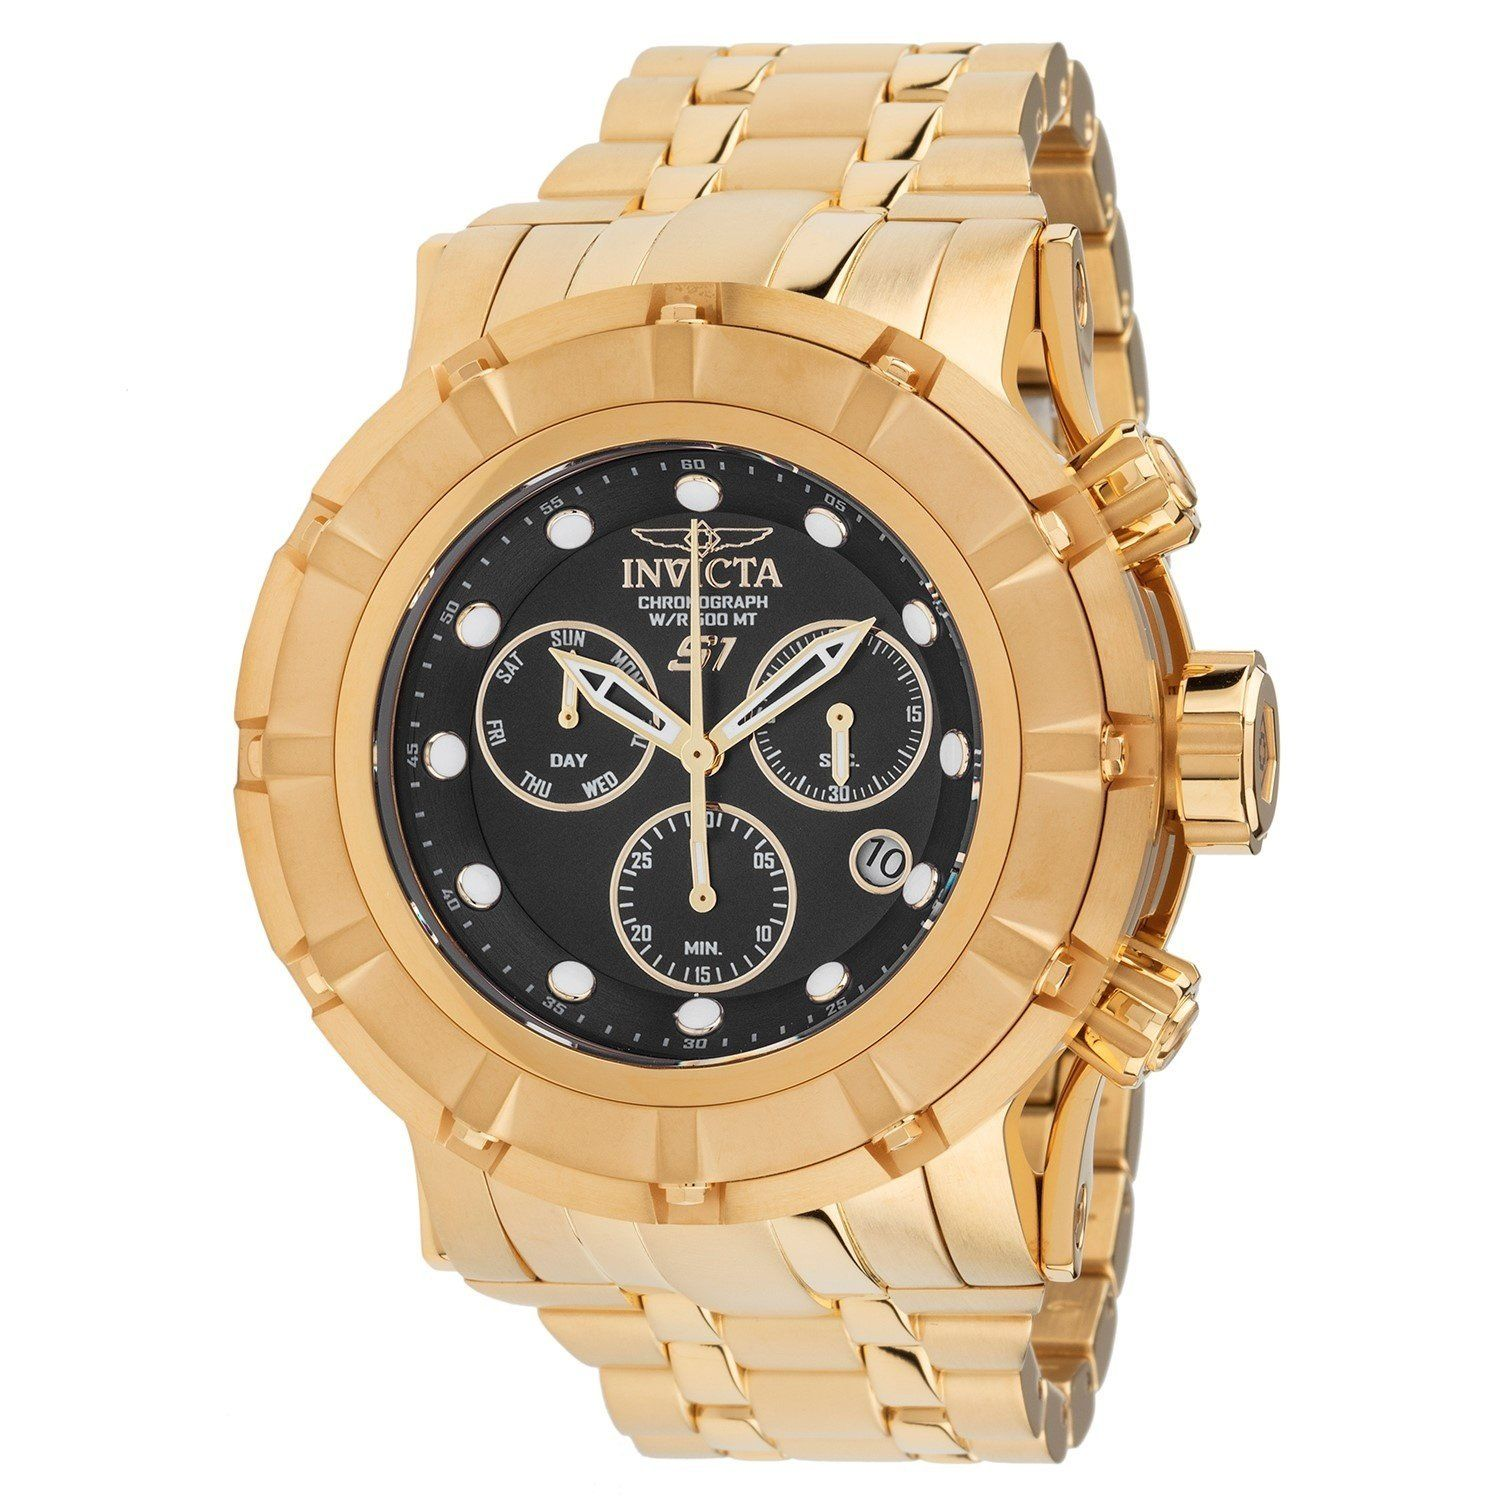 99c4a45b37f Invicta Men s 23954 S1 Rally Gold-Tone Stainless Steel Watch ...